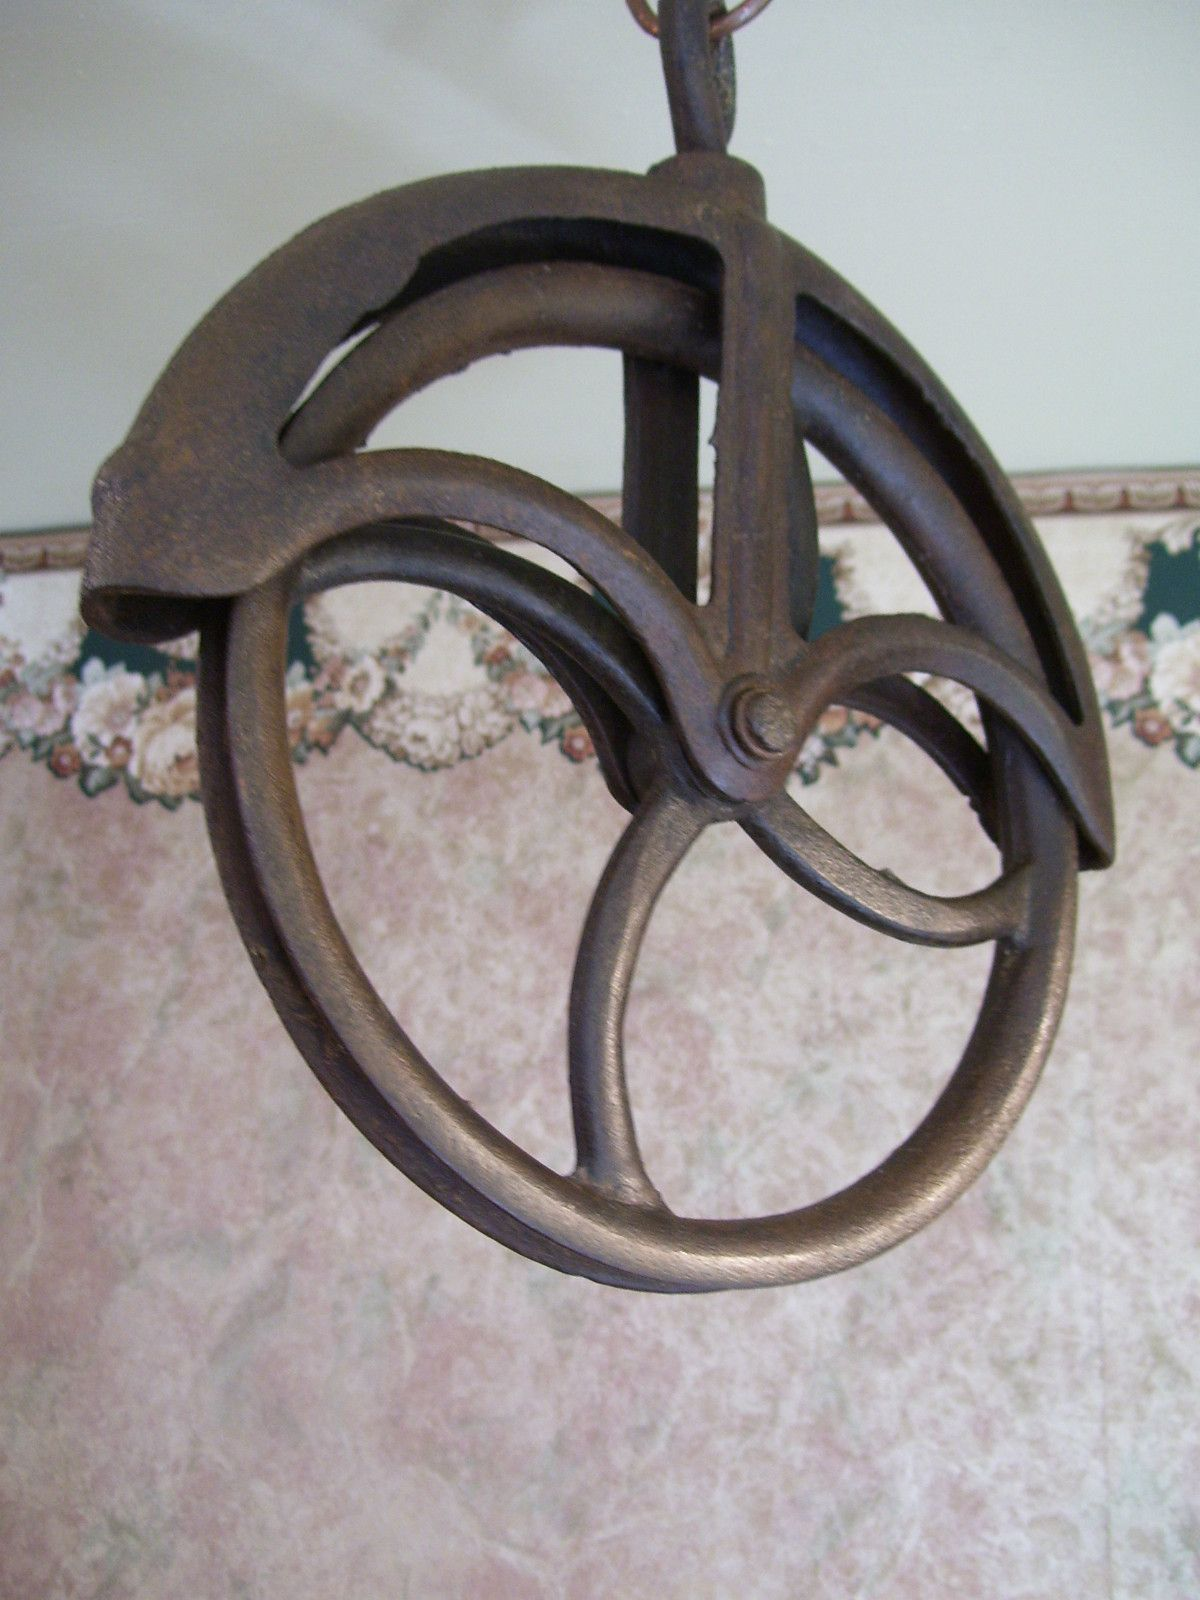 Antique Cast Iron Primitive Water Well Pulley Farm Tool Ebay Antique Cast Iron Farm Tools Antique Tools